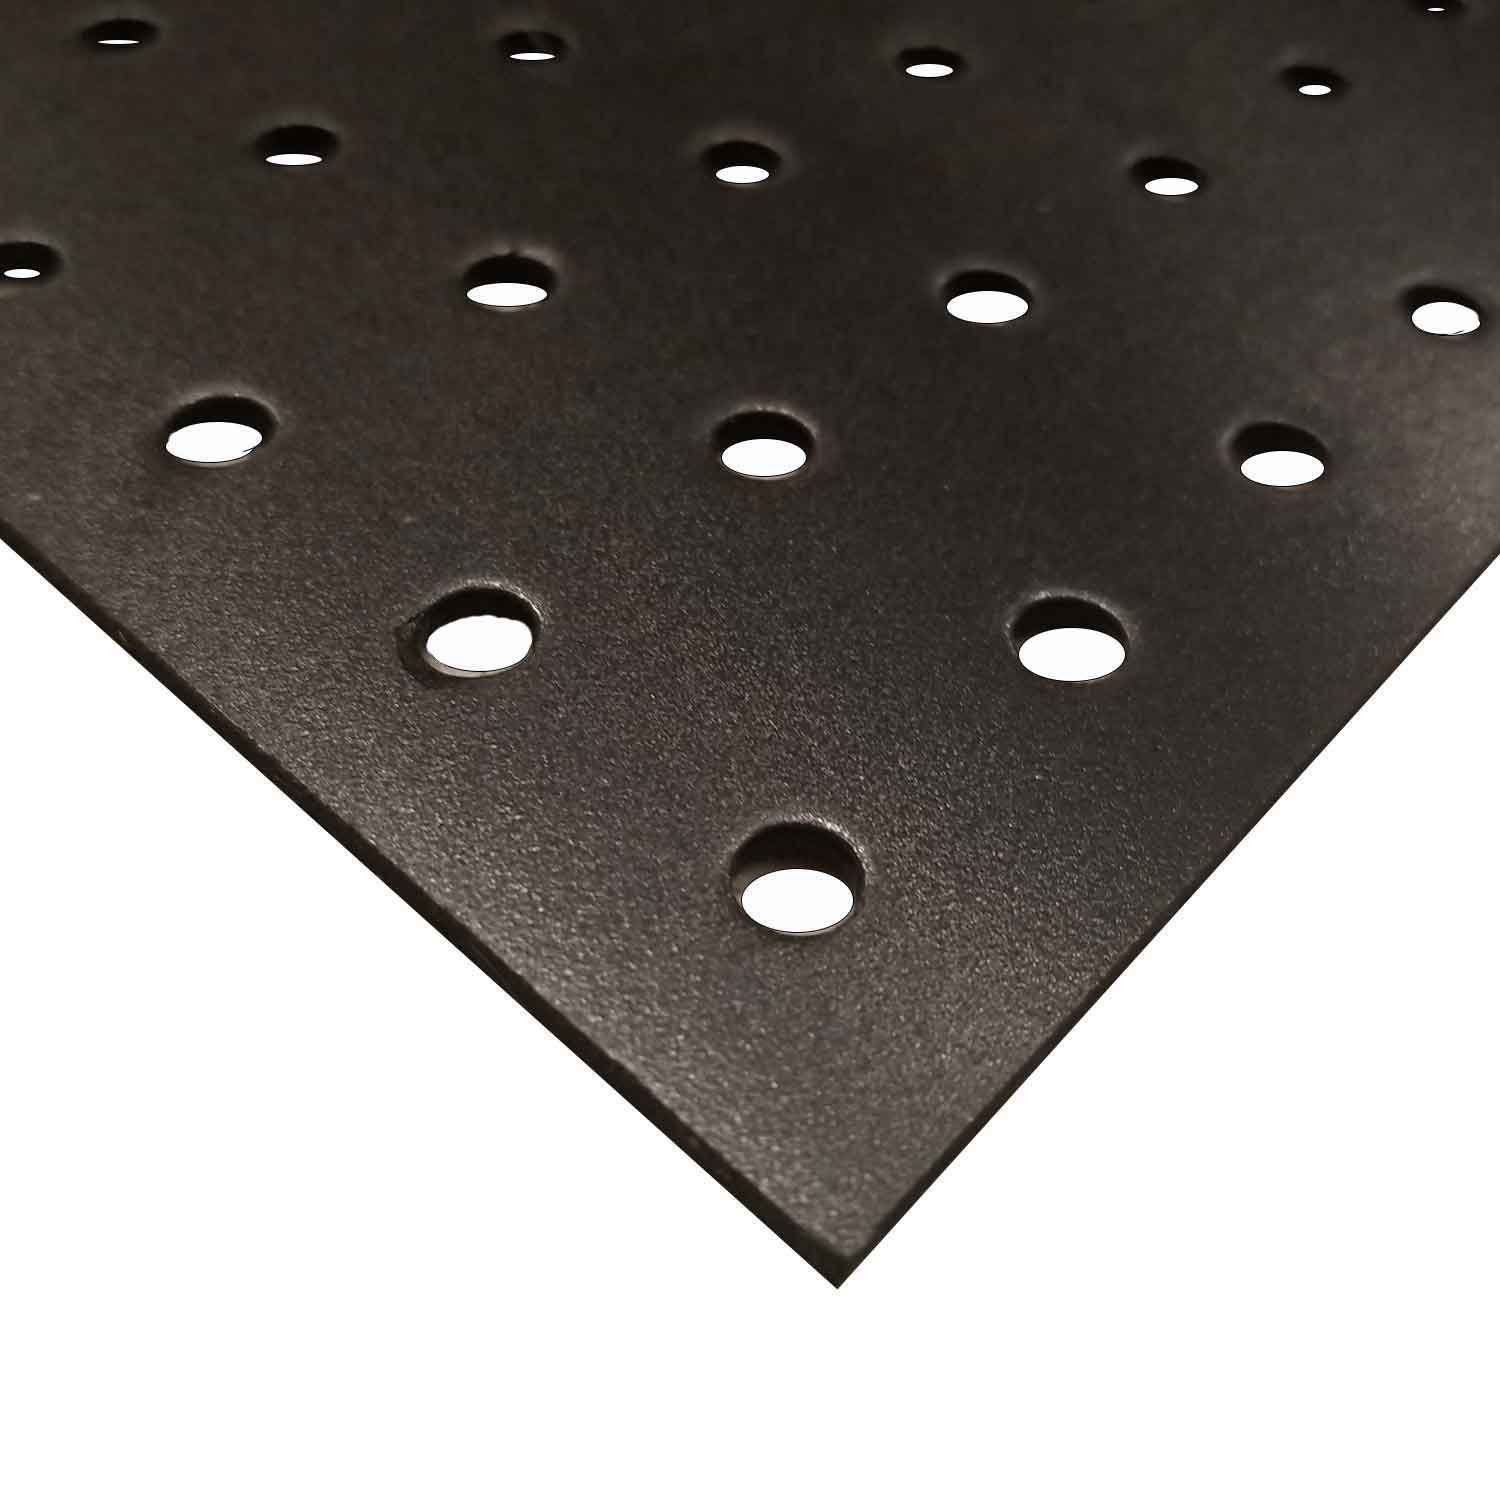 Online Plastic Supply Black Perforated PVC Expanded Sheet 1/8'' (3mm) x 24'' x 48'' (1/4'' Holes) (3 Pack) by Online Plastic Supply